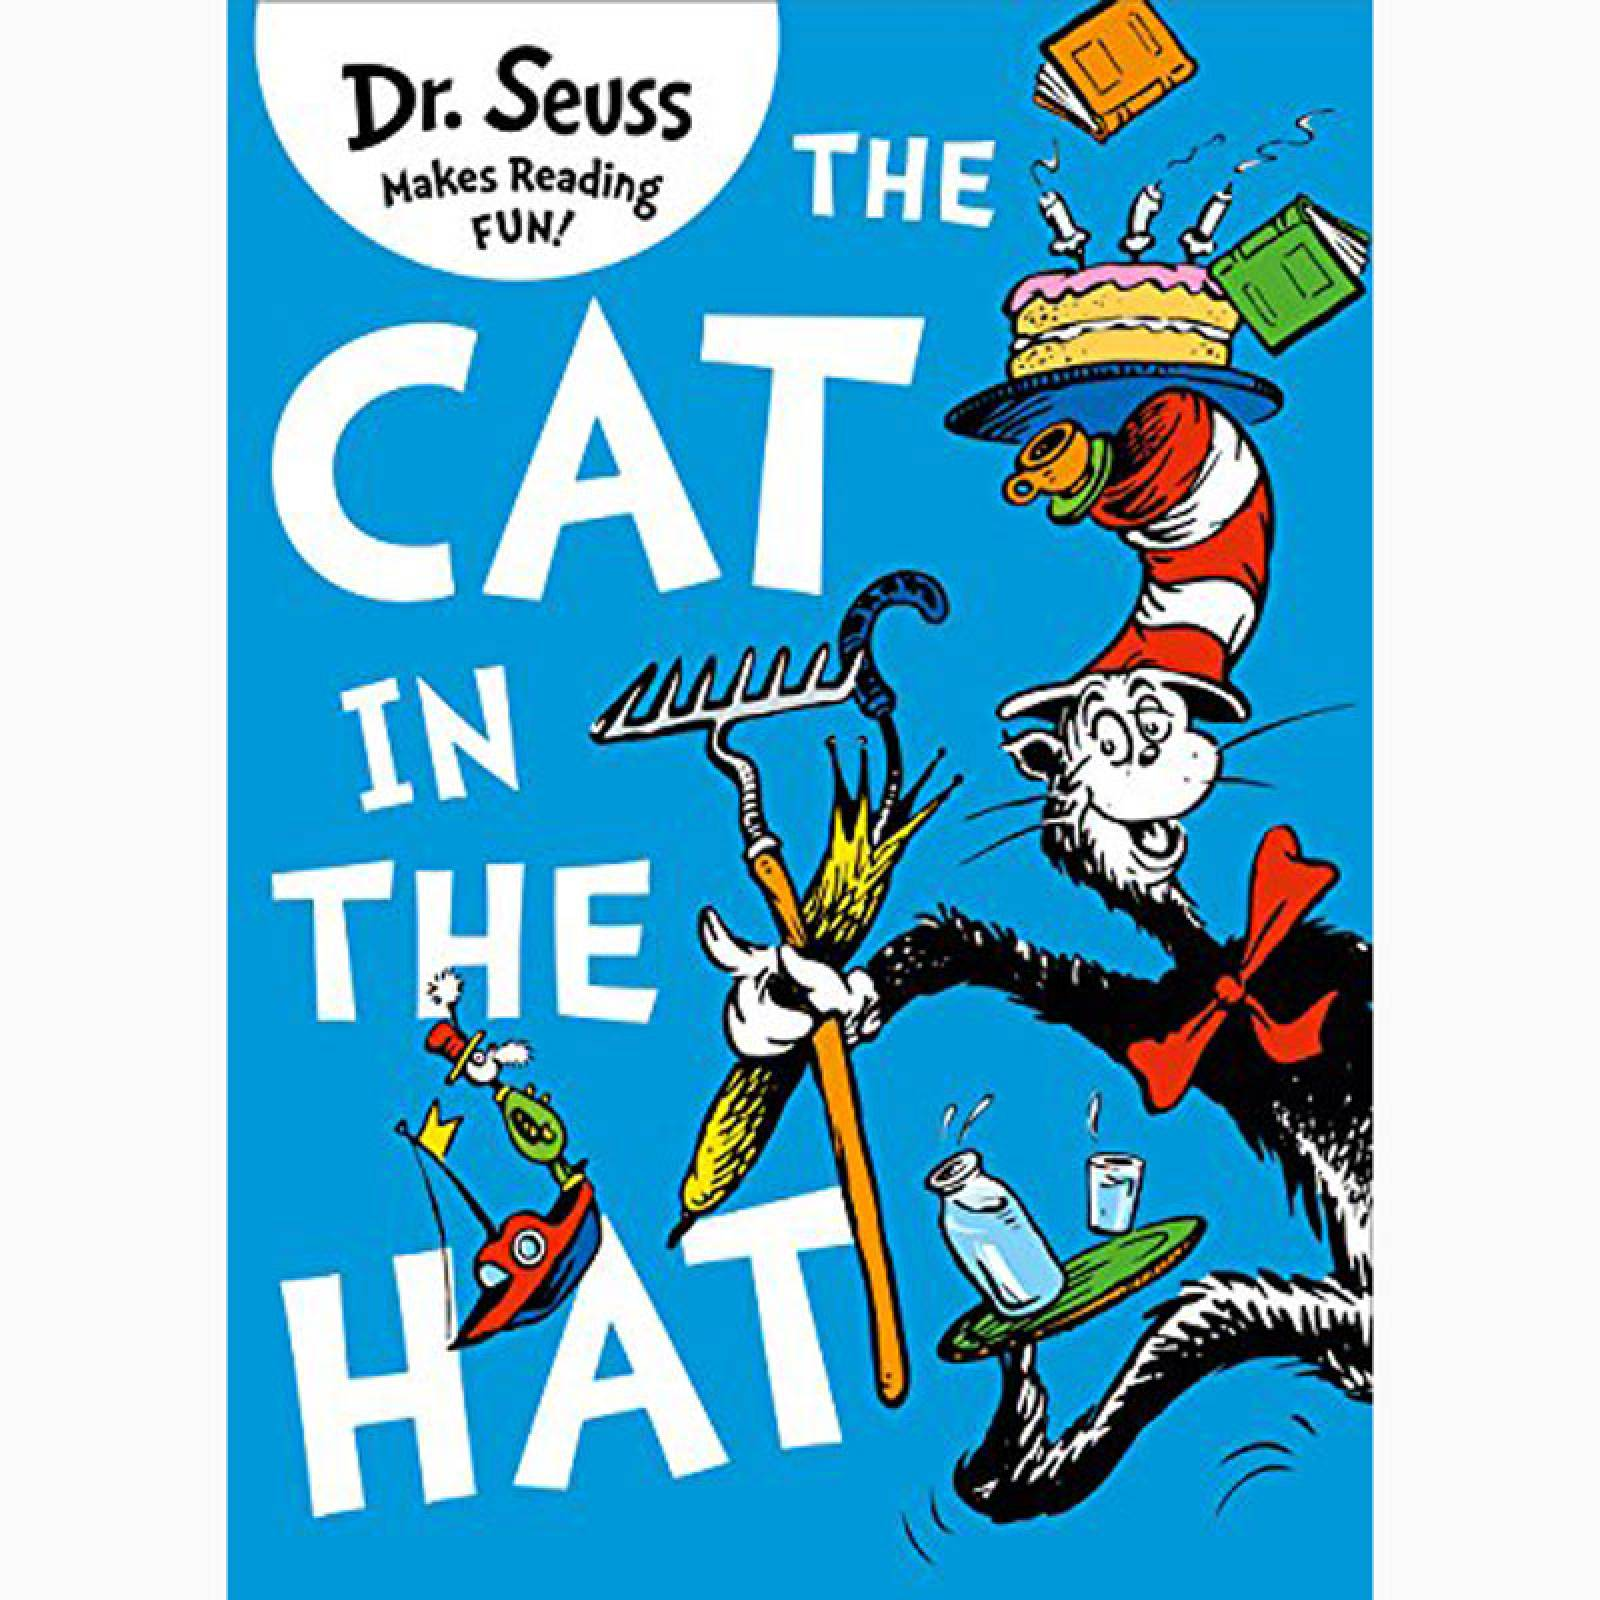 The Cat In The Hat By Dr. Seuss - Paperback Book